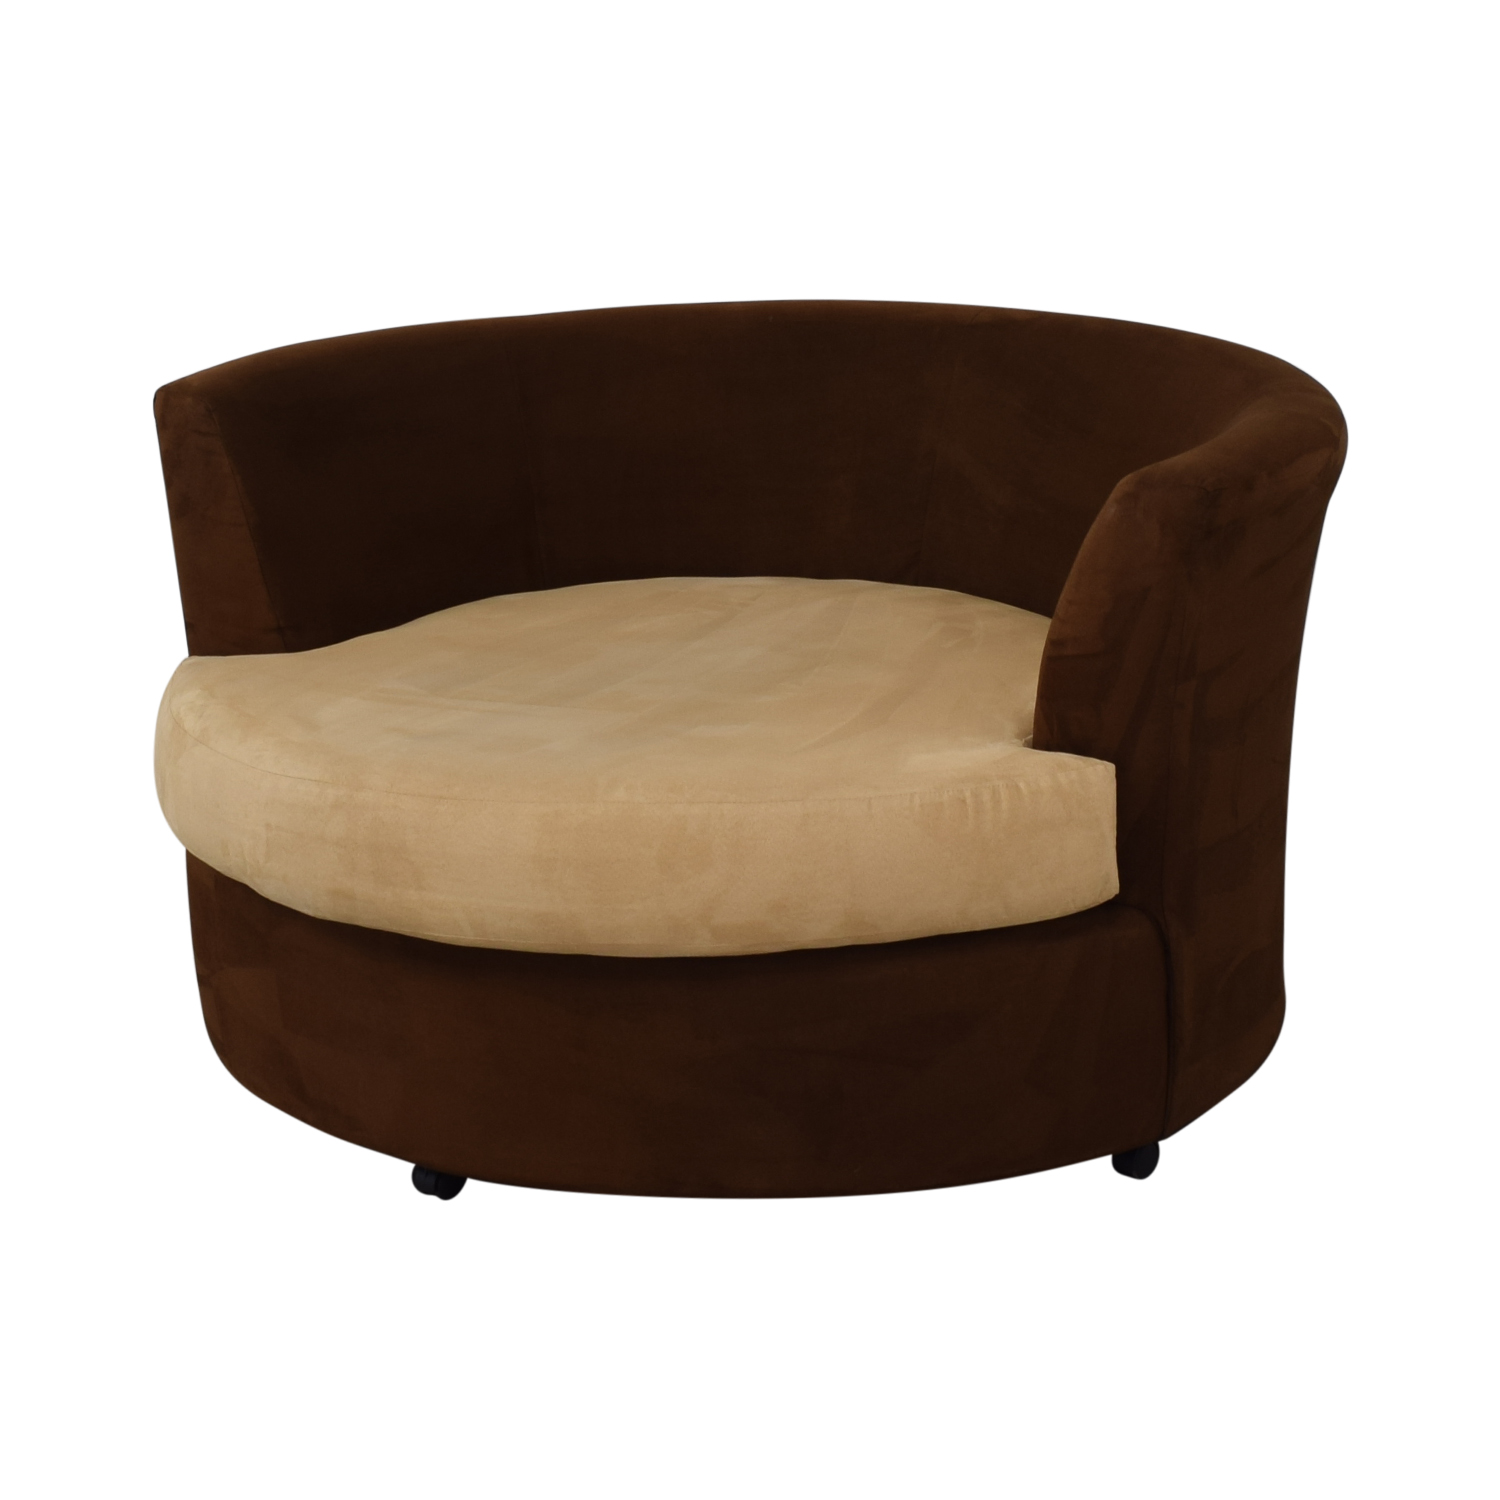 72 Off Kroehler Kroehler Brown Suede Swivel Chair Chairs